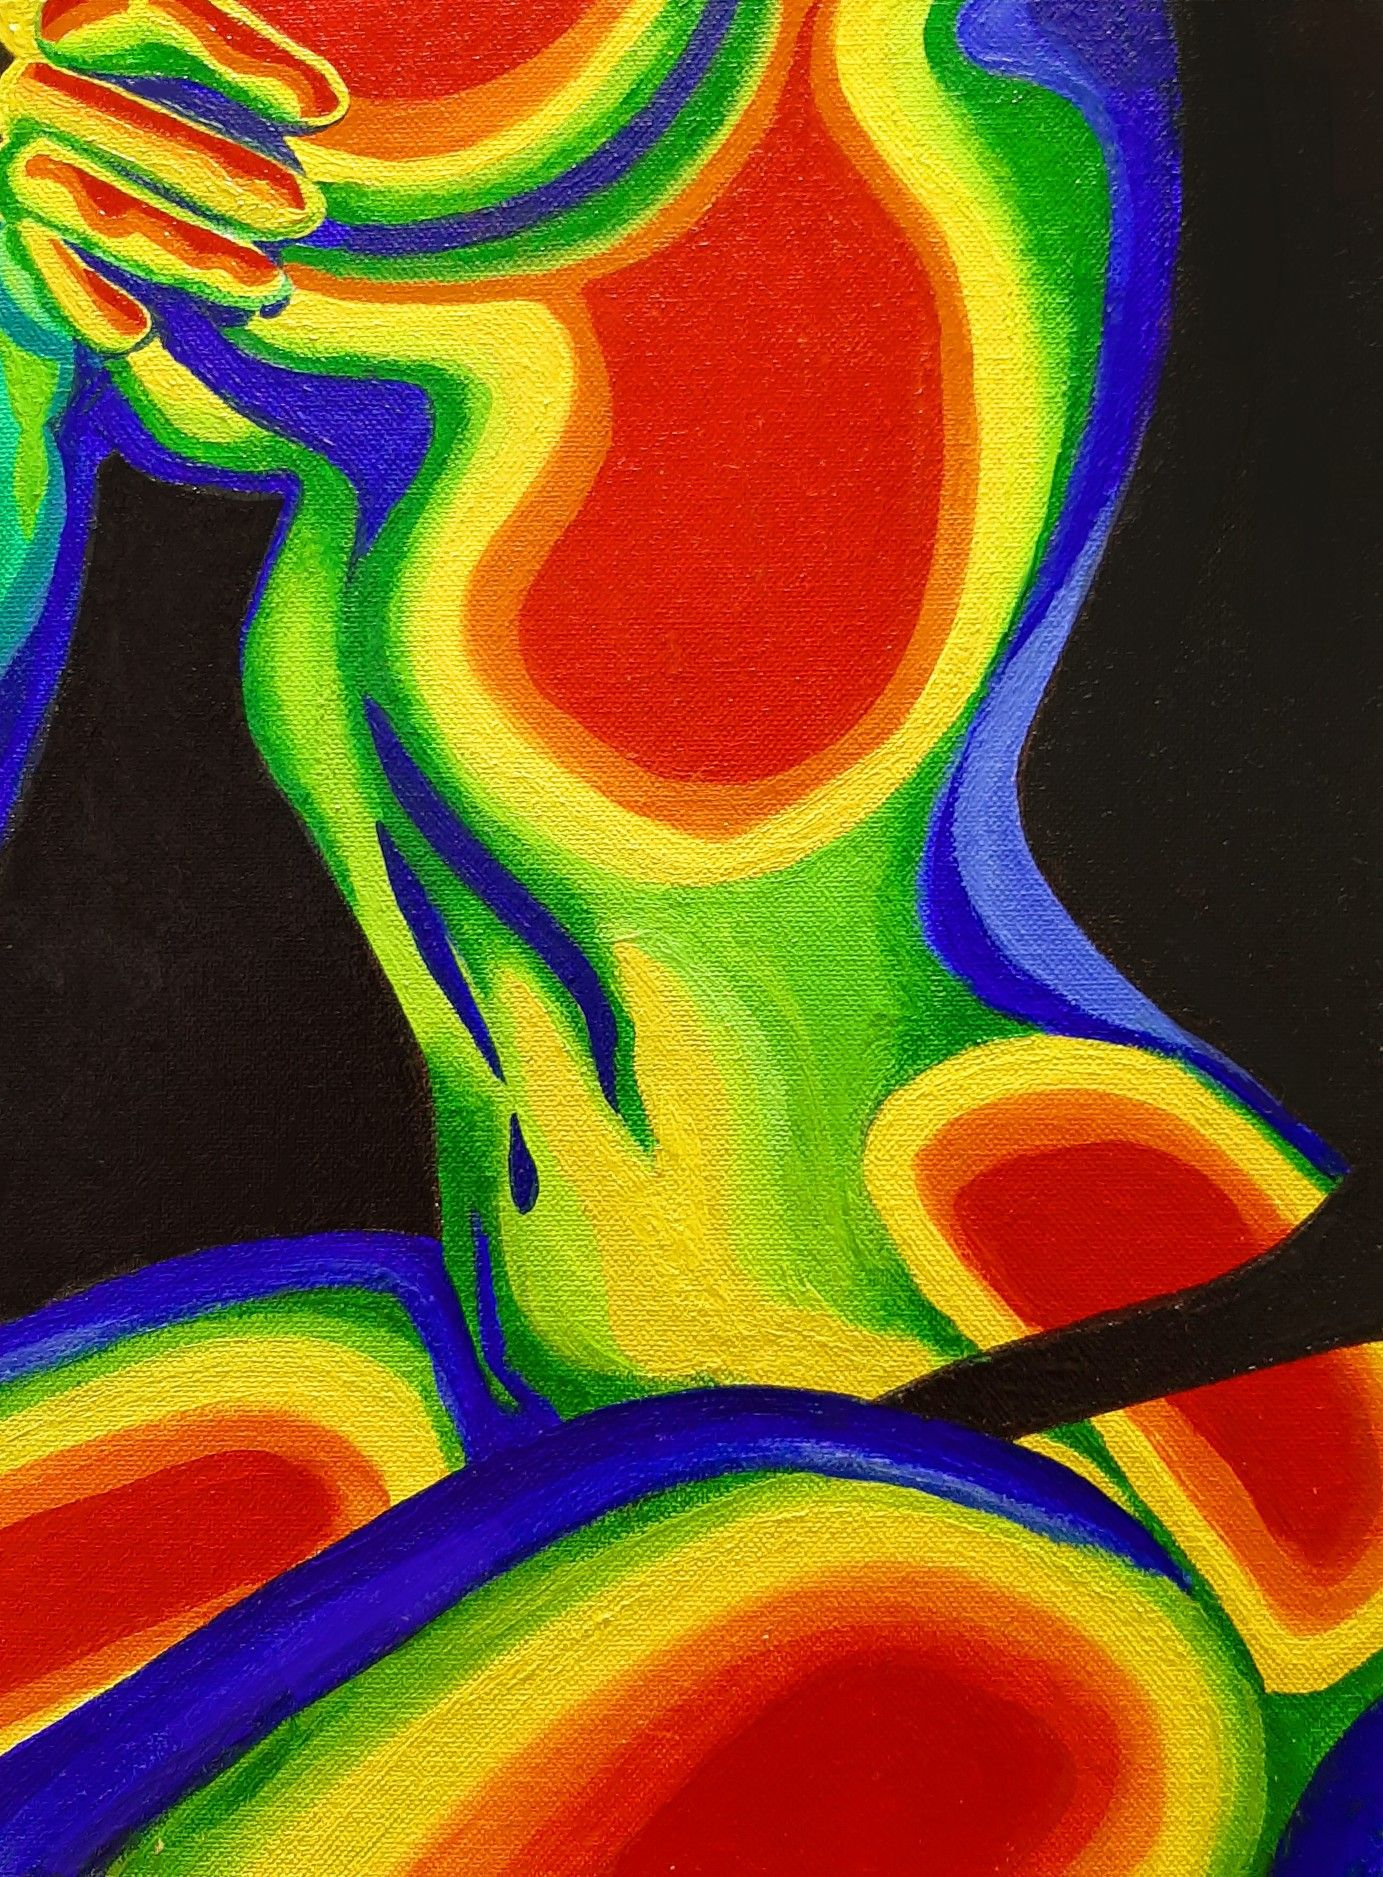 Thermal Body Art In 2020 Abstract Art Painting Painting Art Projects Art